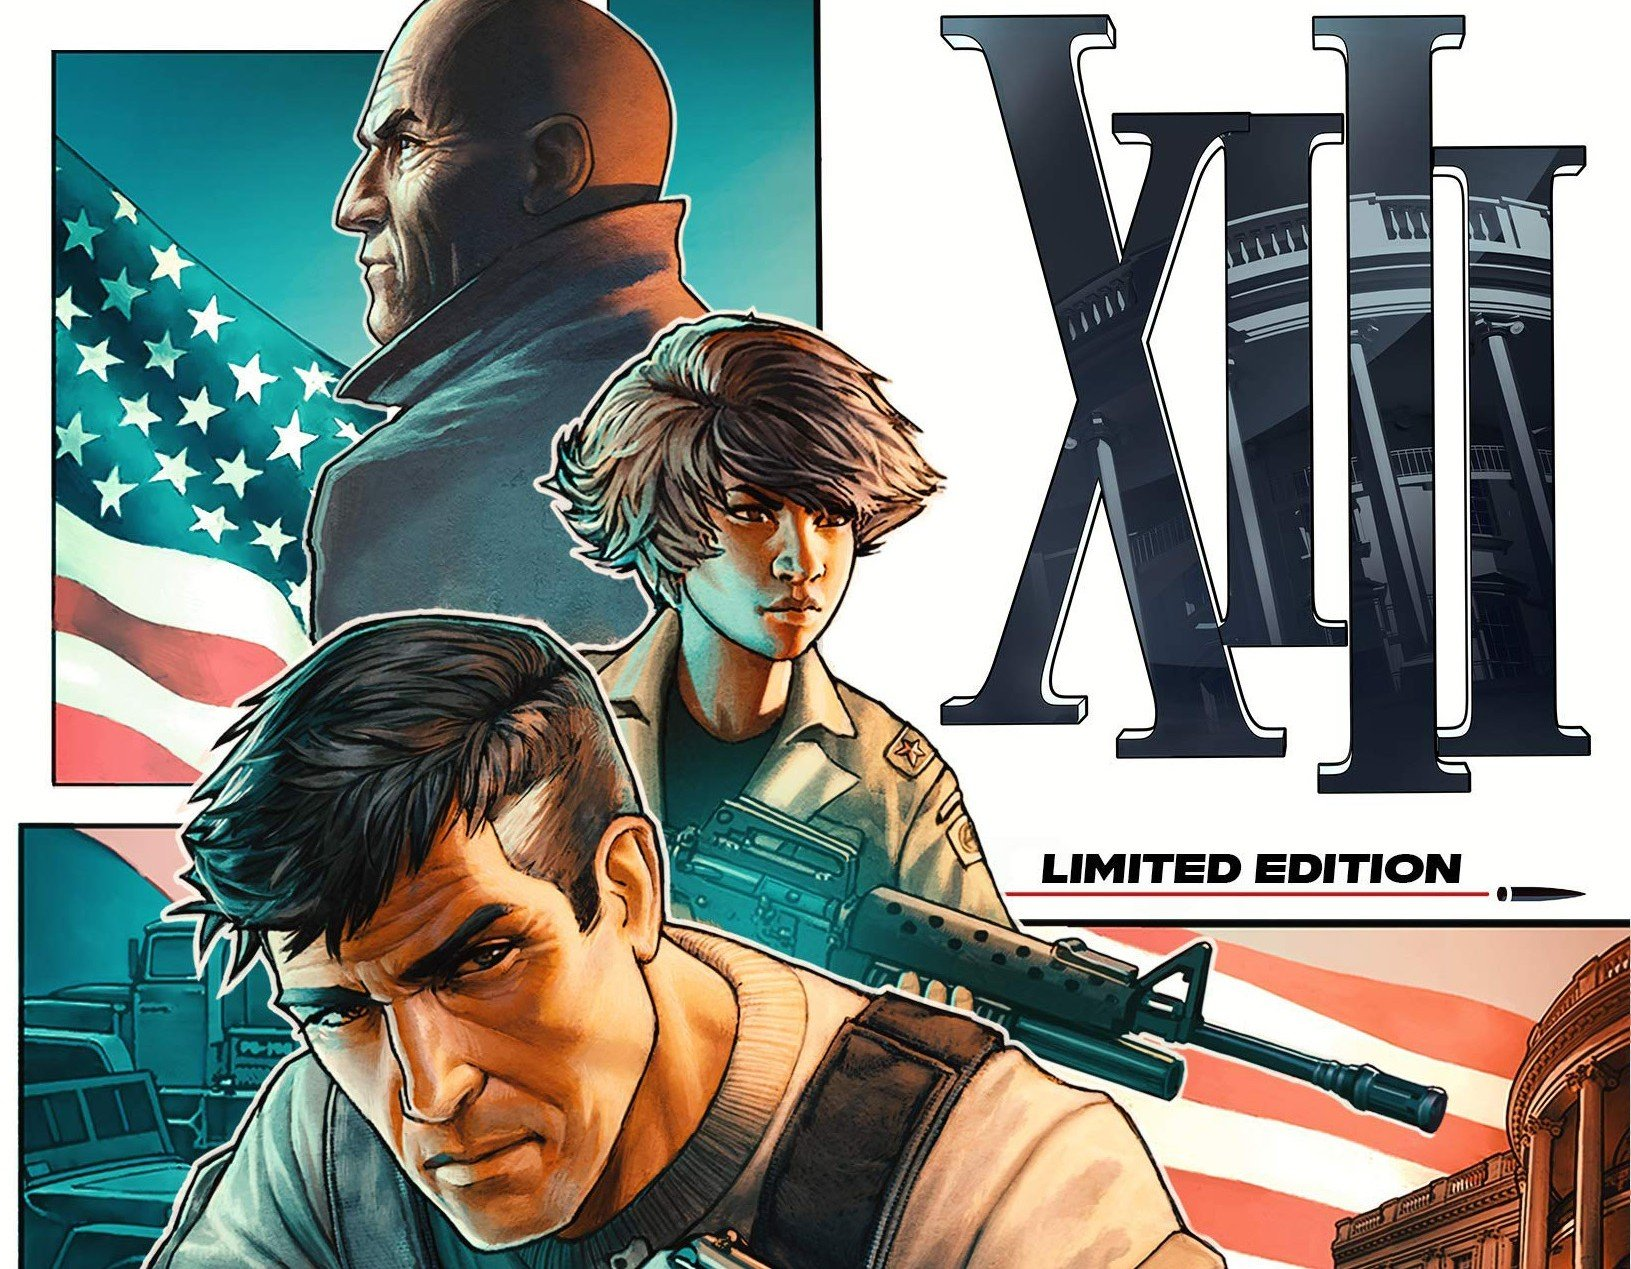 The XIII remake will debut in November, still slated for PC, PS4, Xbox One, Switch screenshot